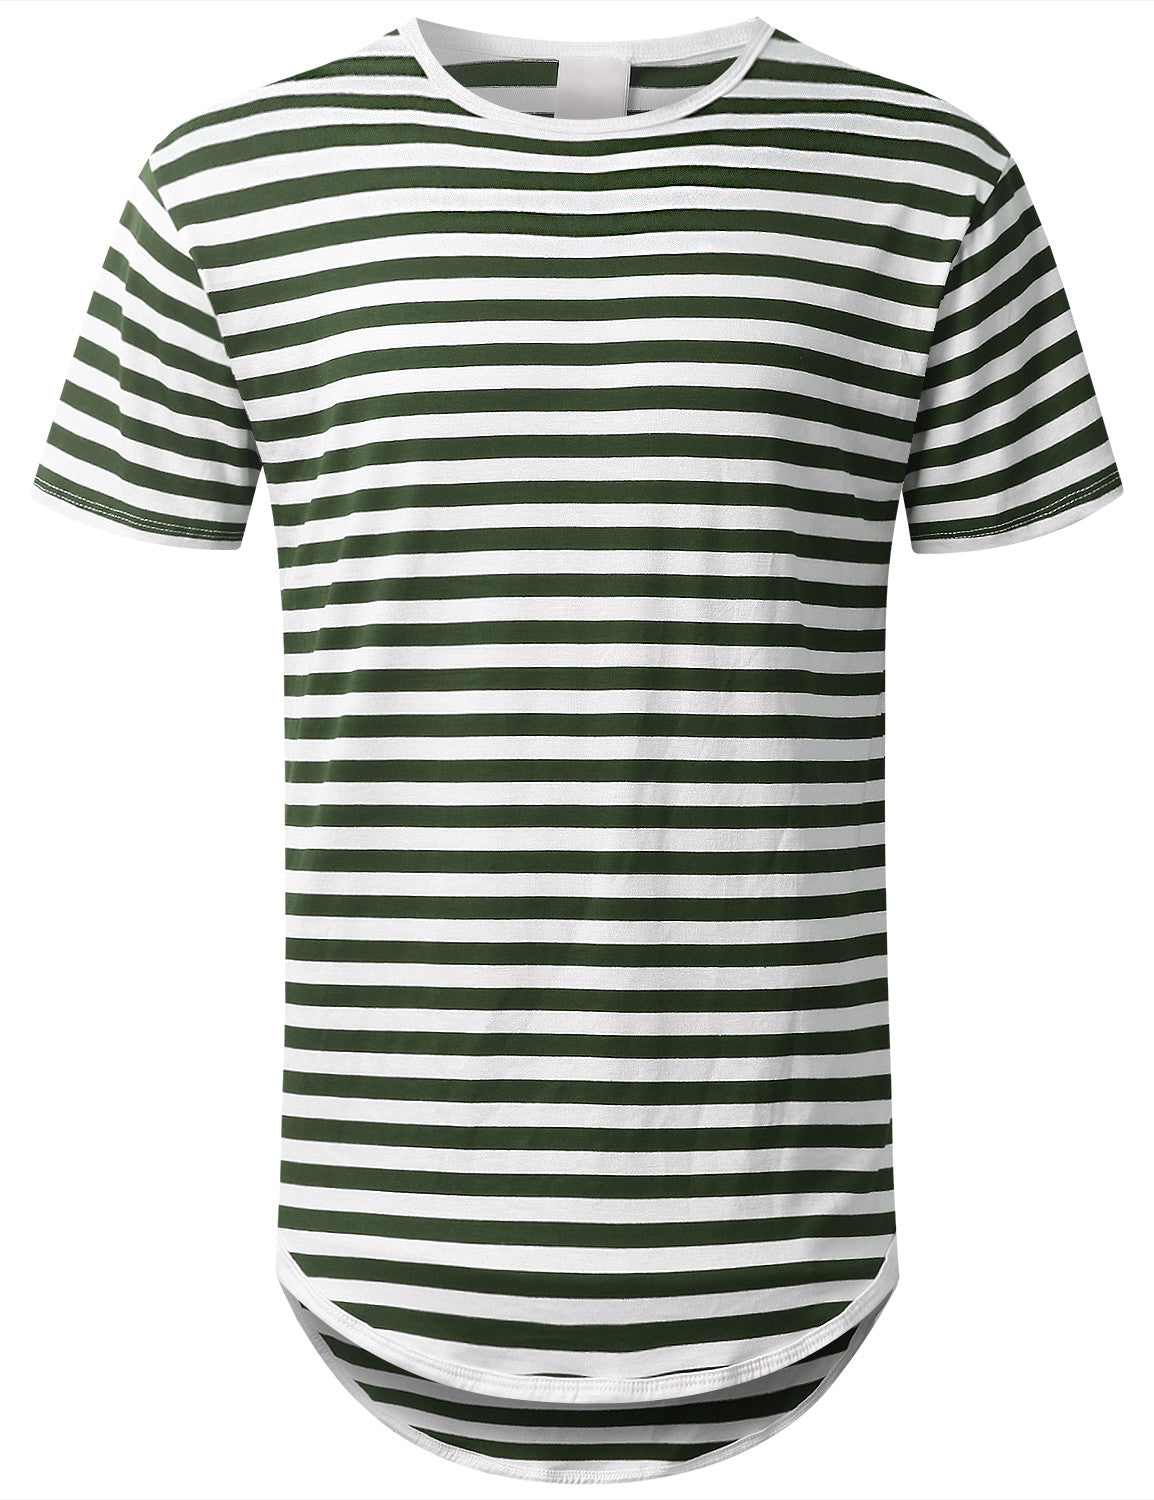 OLIVE Striped Longline Crewneck T-shirt - URBANCREWS